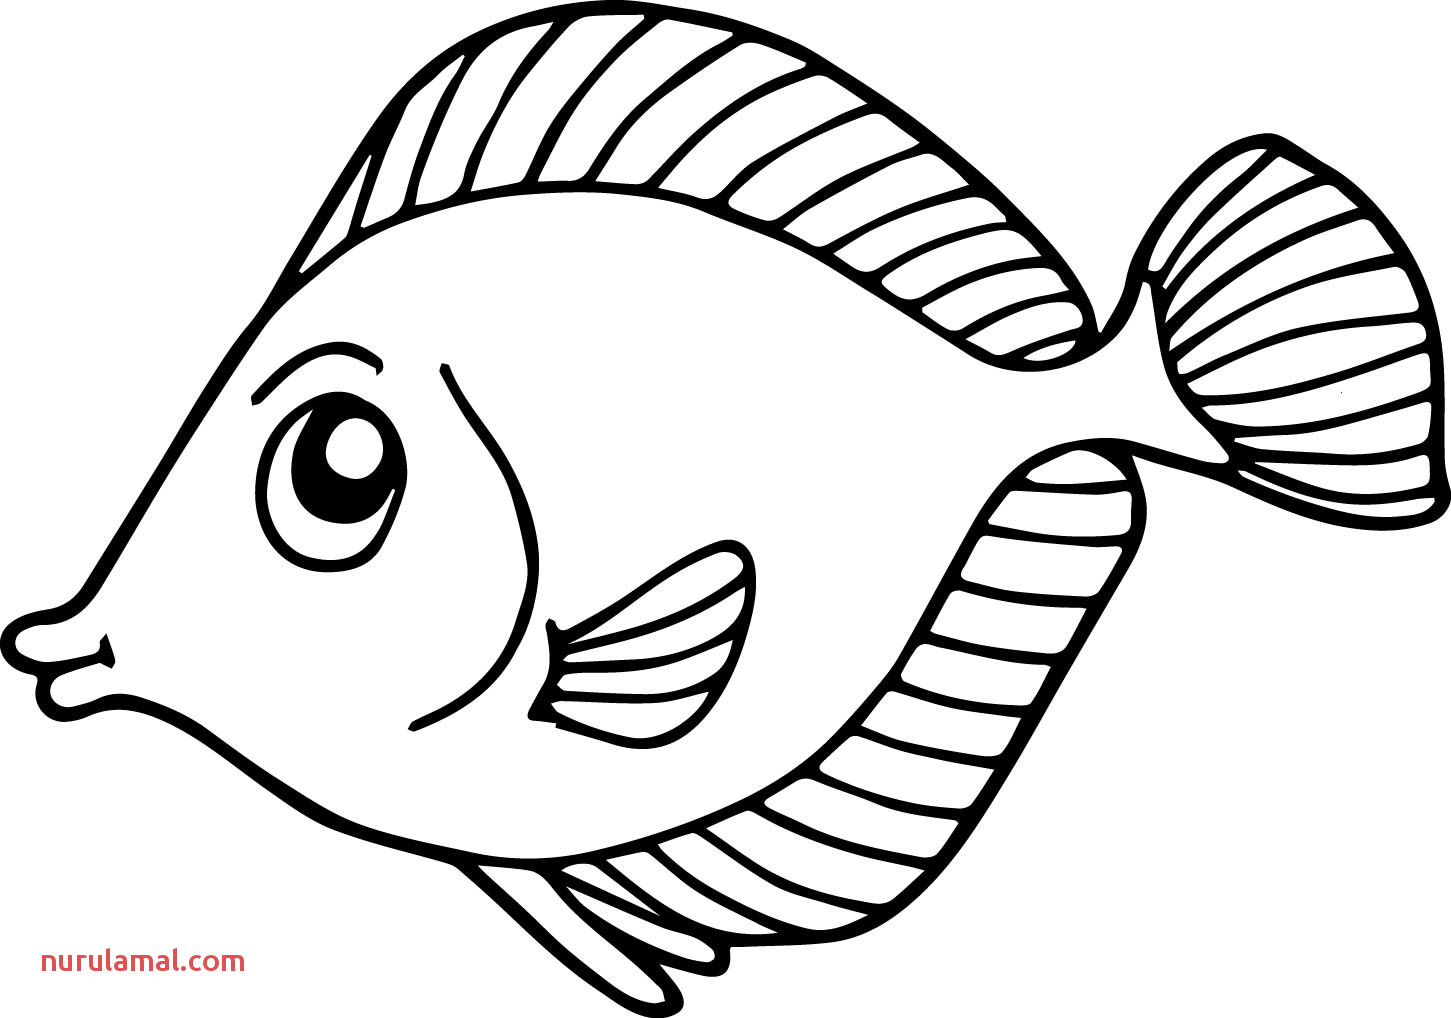 Colouring Worksheet Fish